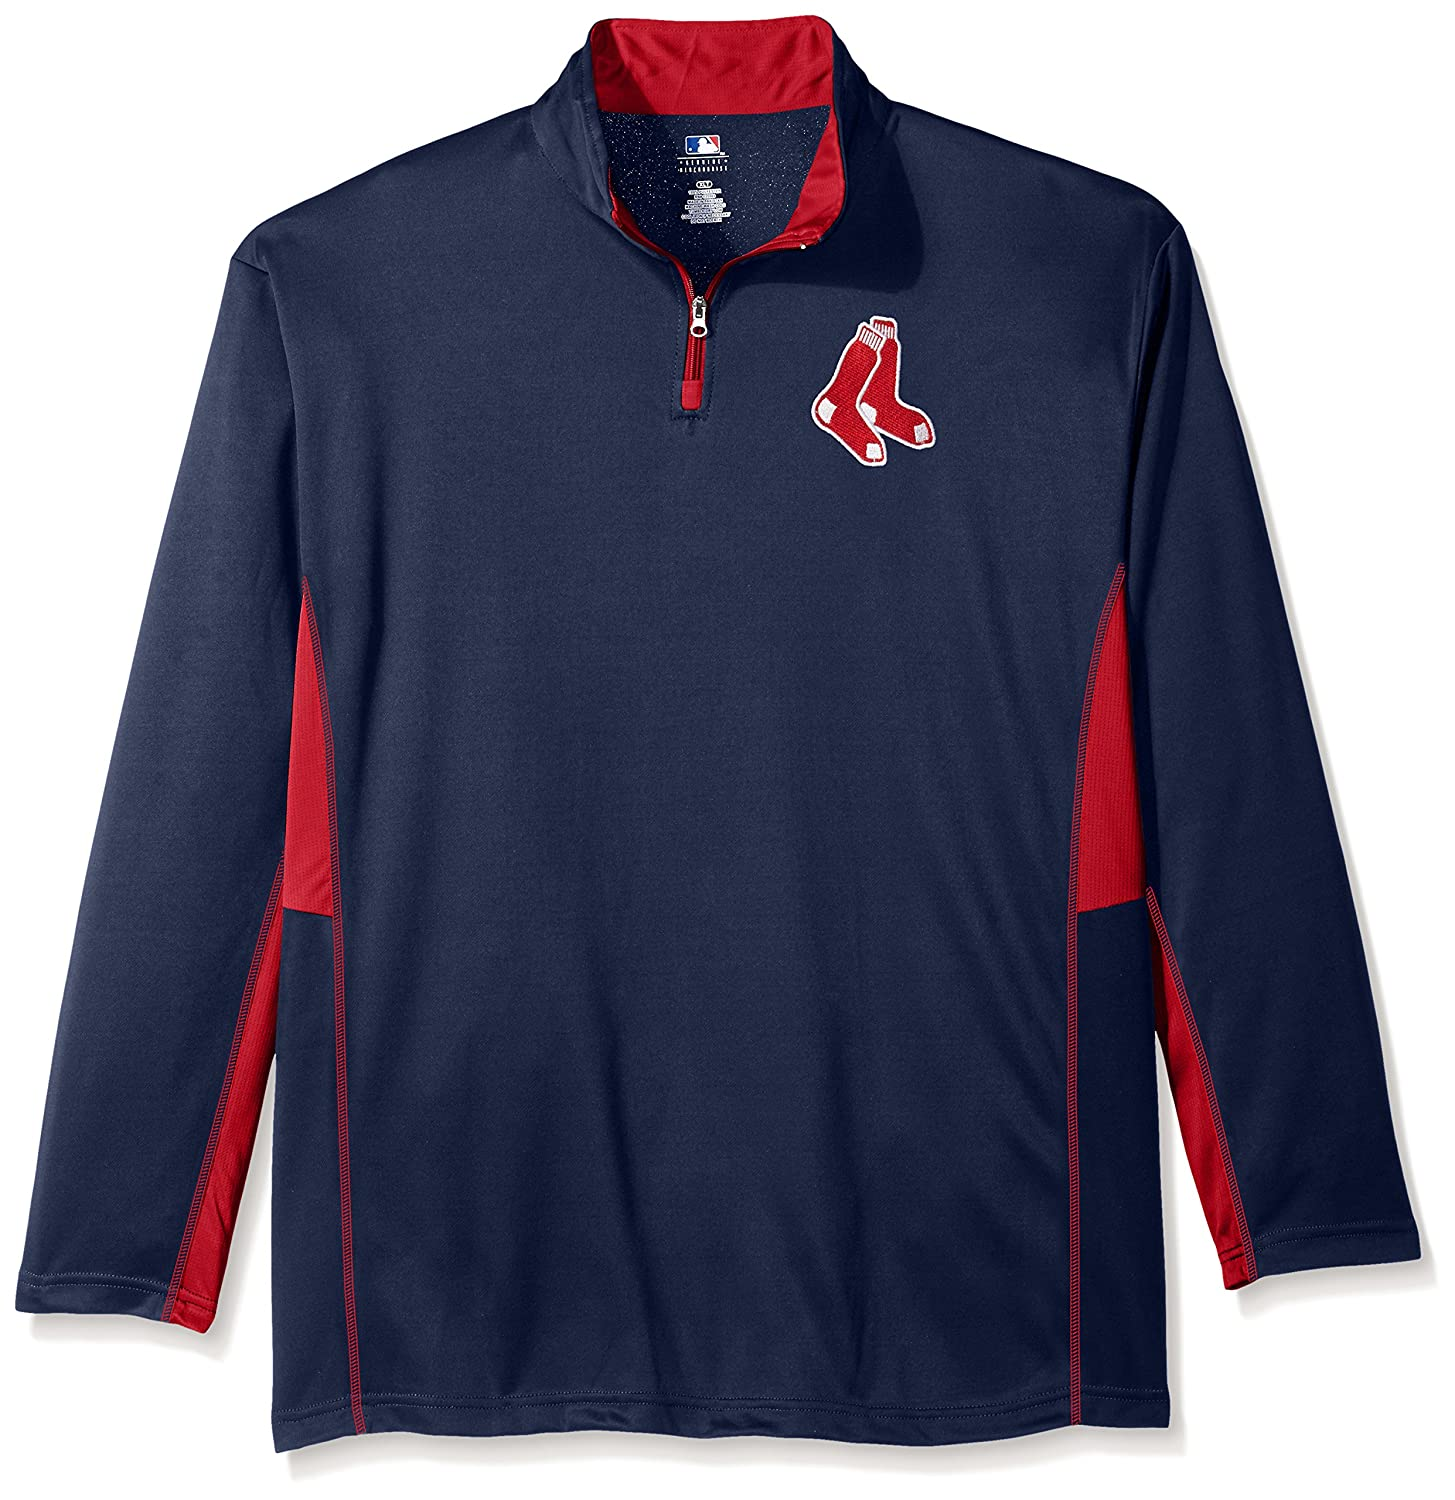 MLB Big and Tall Men's Long Sleeved Quarter Zip Poly Jersey with Logo Embroided Profile Fortune MLBQTRZPAMBR - NAVY - 4XT